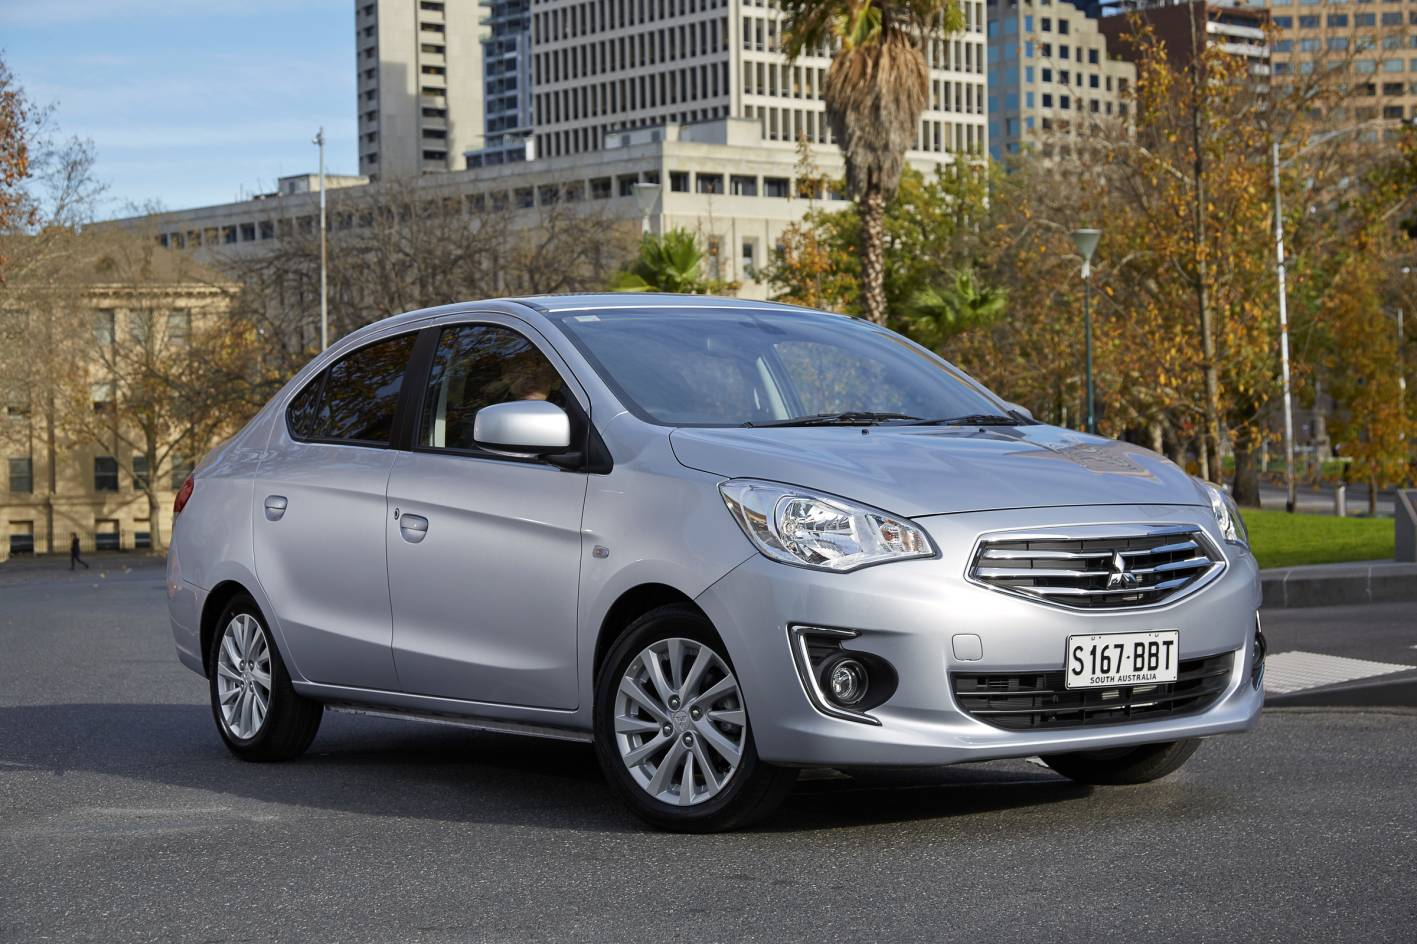 Mitsubishi Cars - News: Mitsubishi Mirage facelifted for 2016